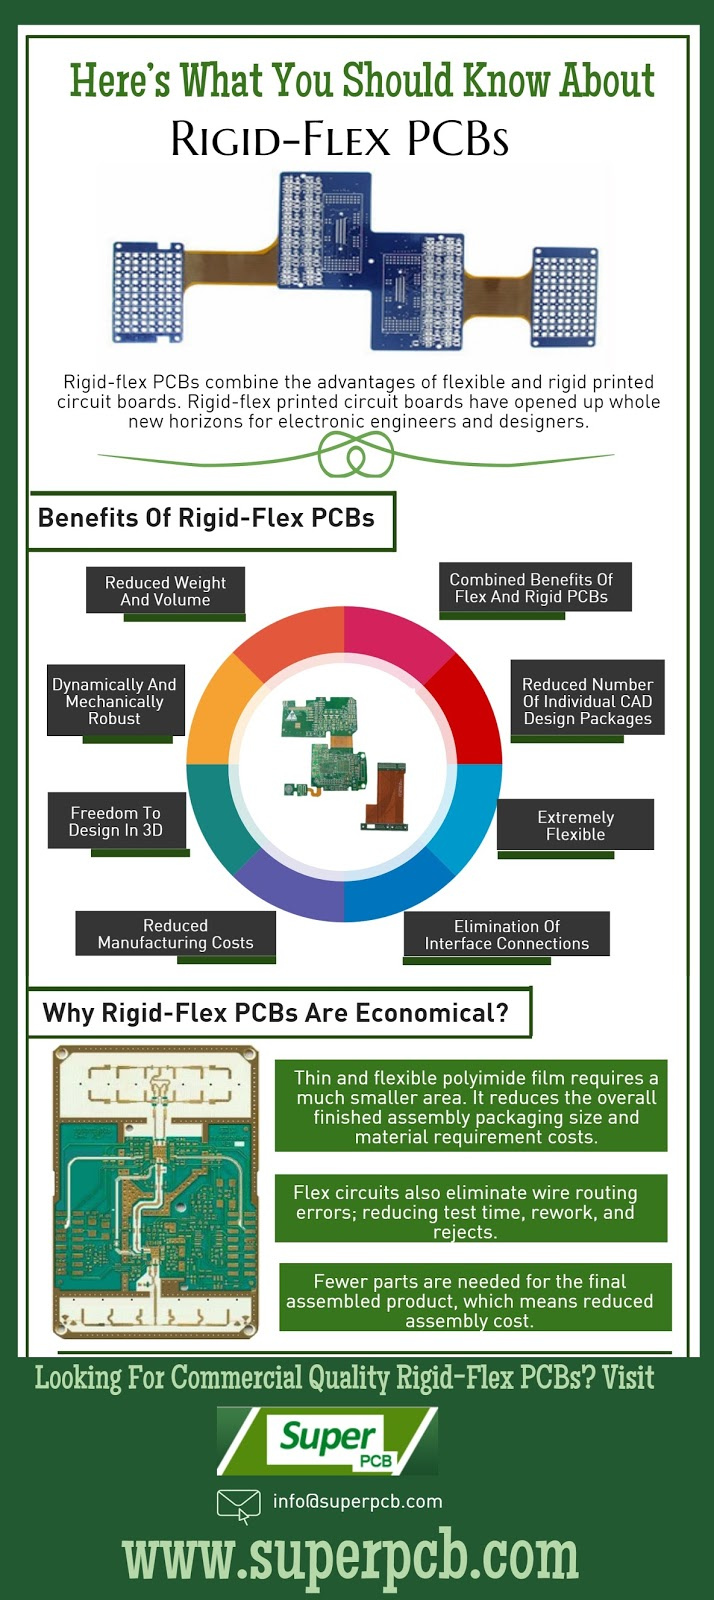 Super Pcb A Leading Supplier Of Pcbs 2015 Rigidflex Circuit Boards Are Composed Combination Rigid And Provides Single Double Sided Multi Layered Flex Flexible Prototypes Caters To Wide Range Industries